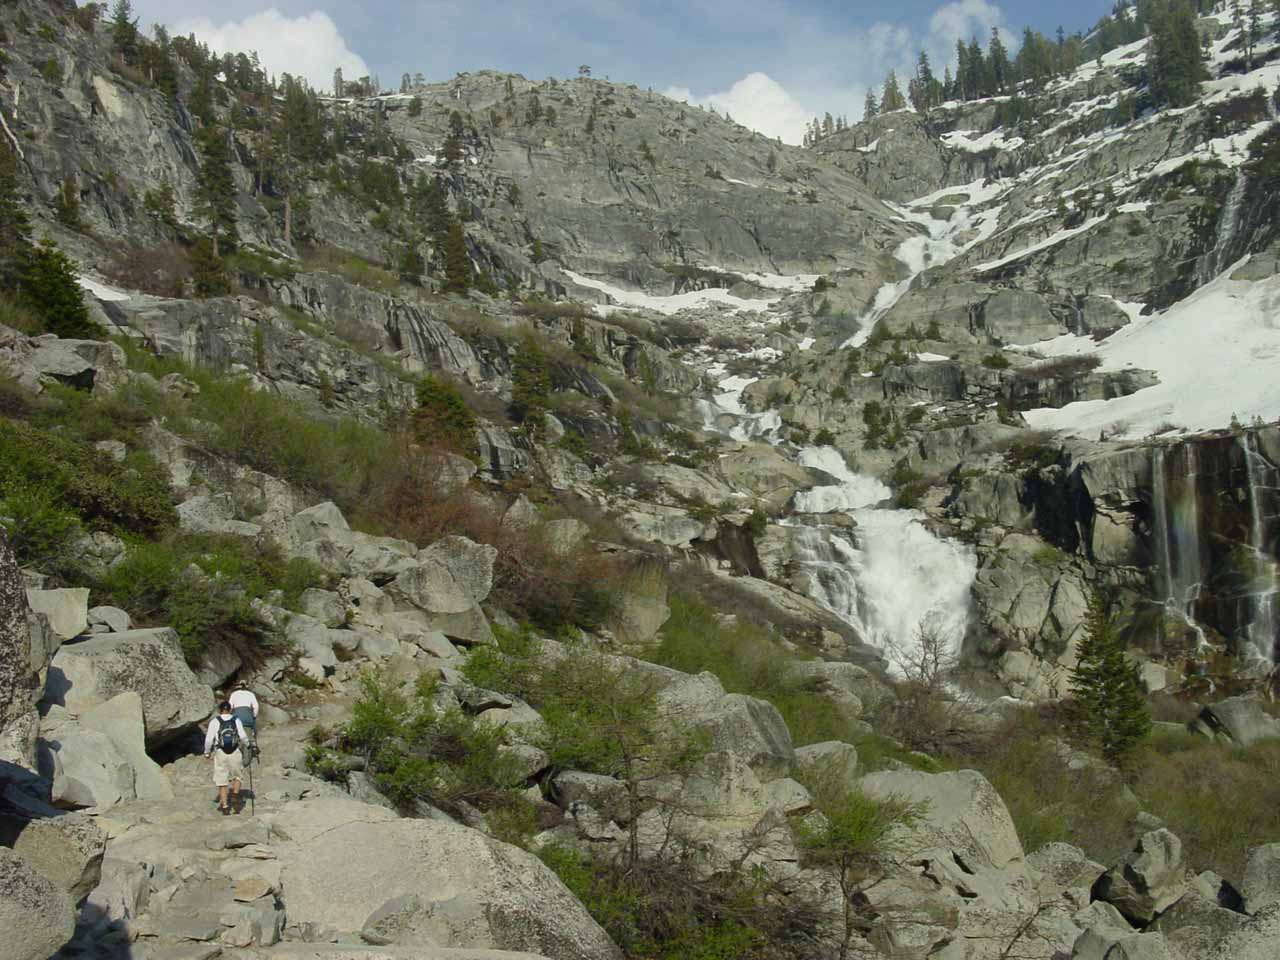 My parents approaching the impressive Tokopah Falls